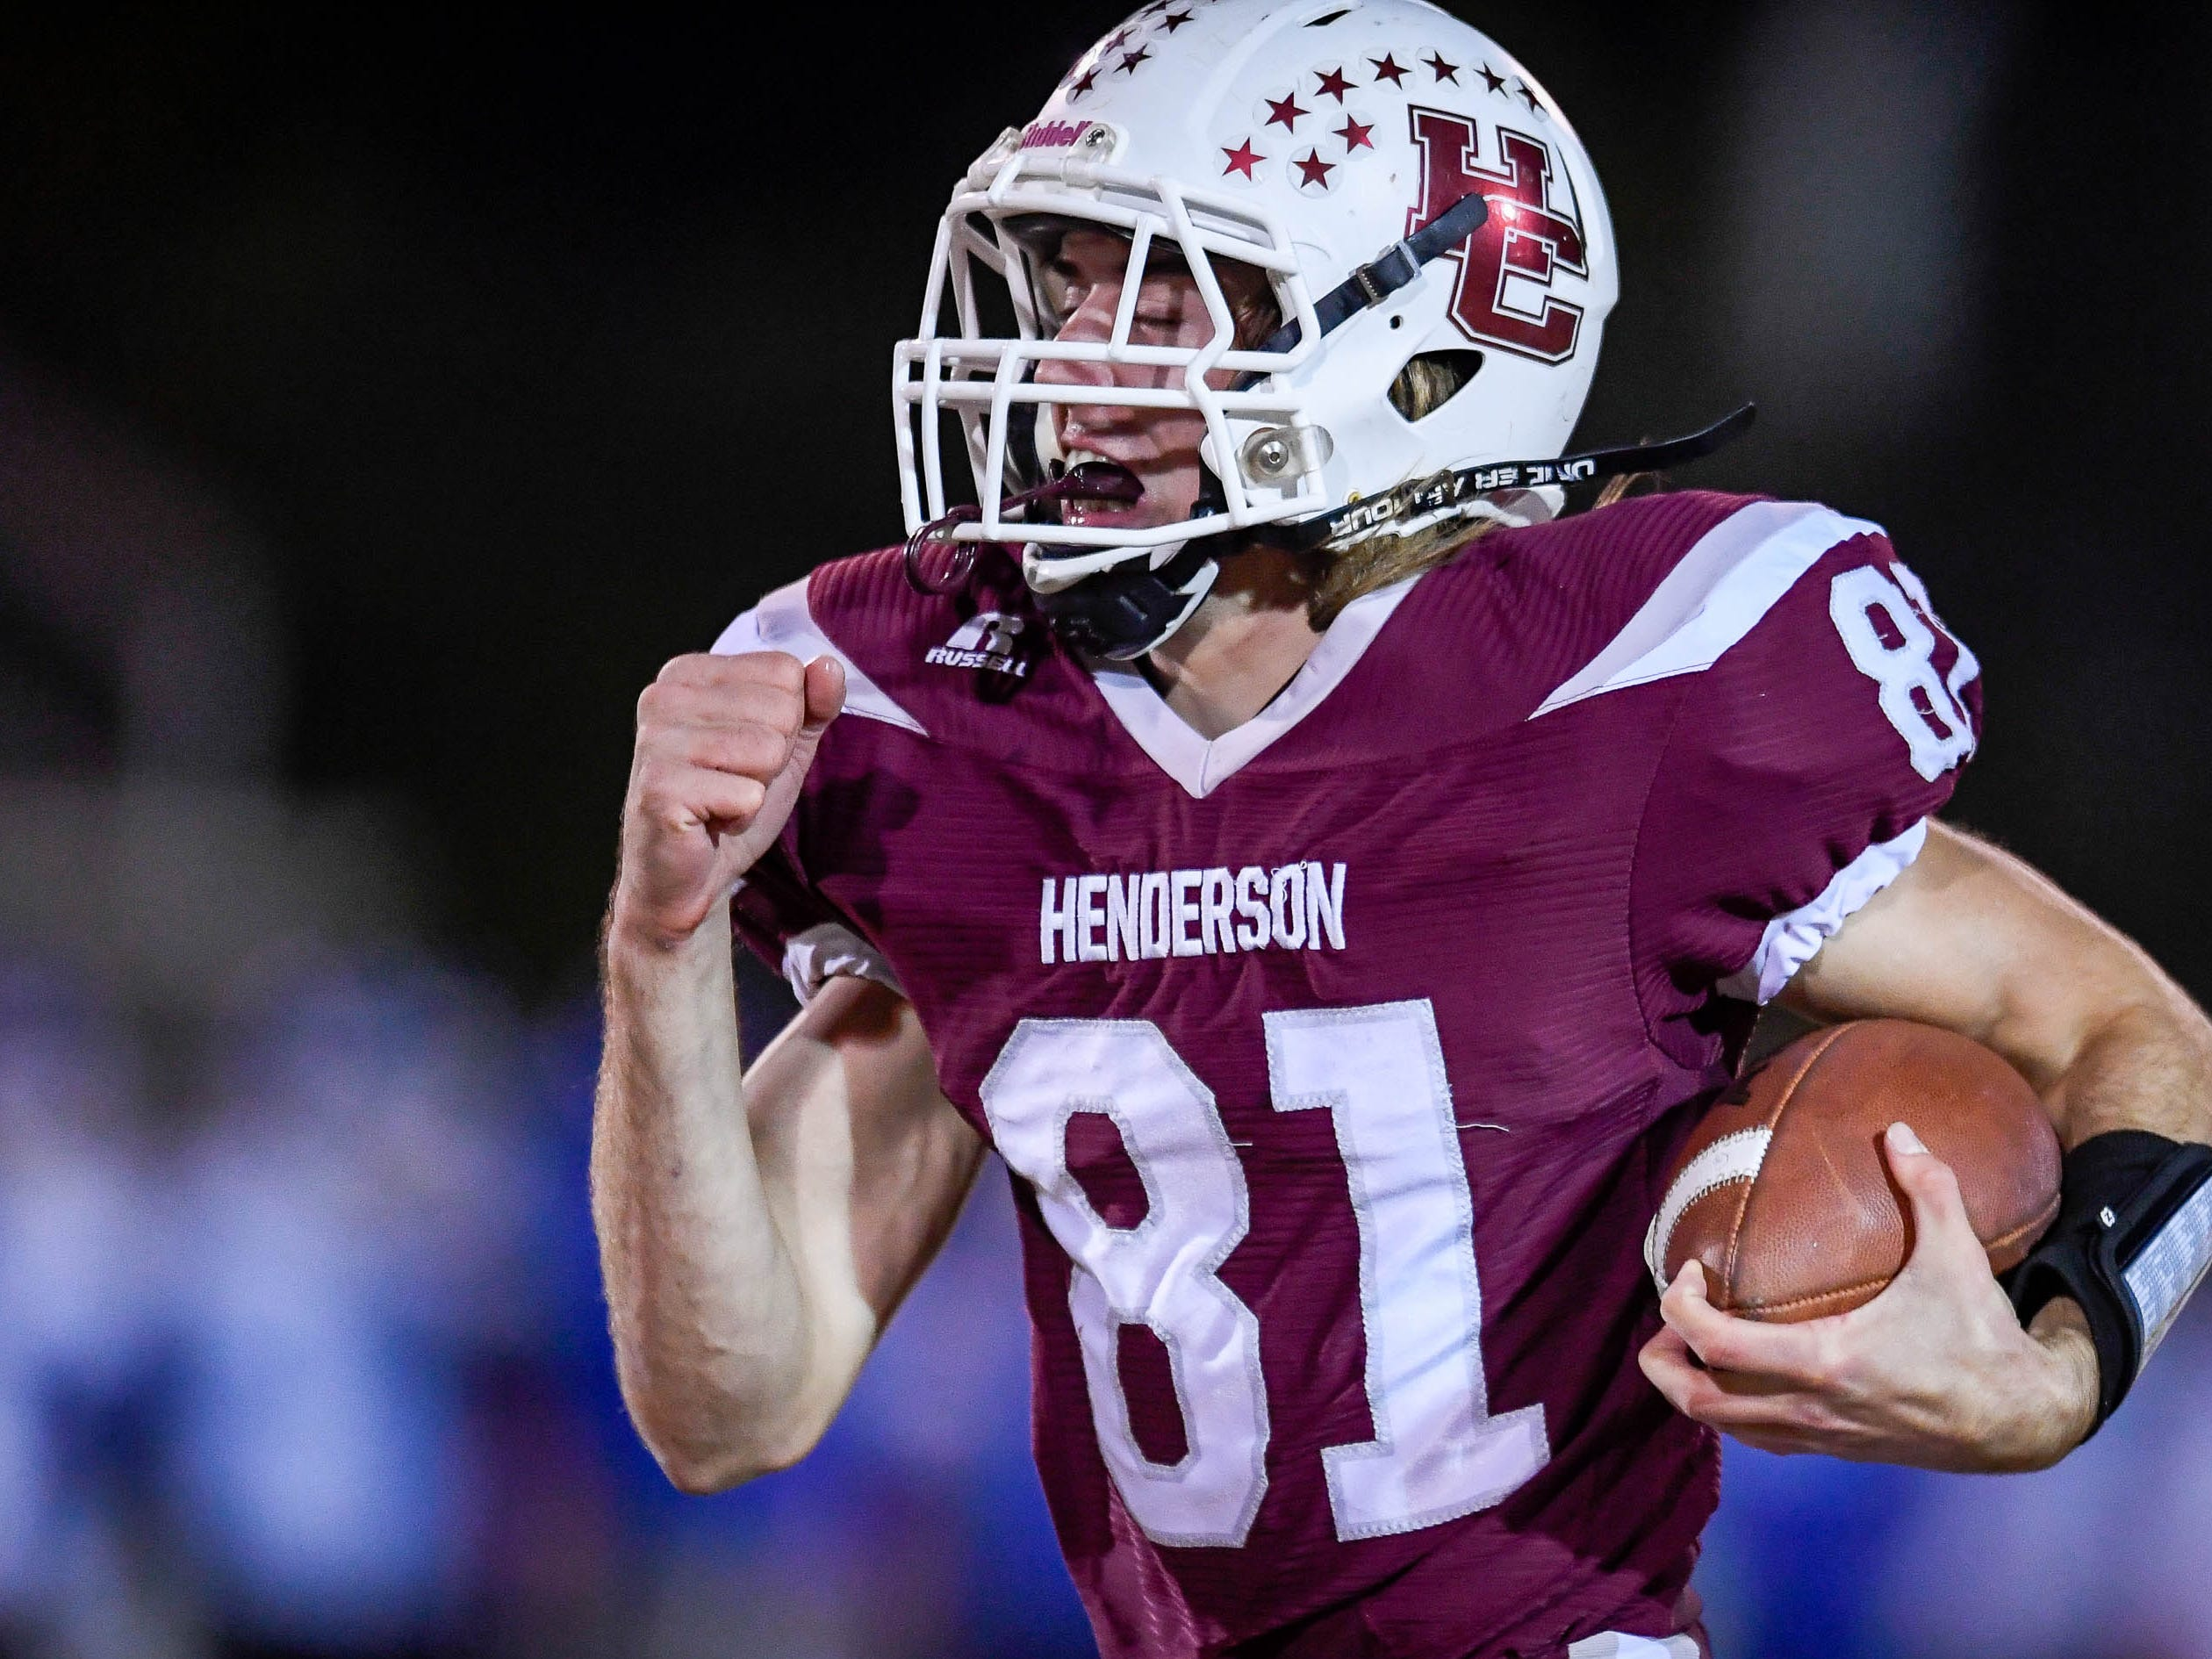 Henderson's Nick Cissell (81) on a 66 yard touckdown run as the Henderson County Colonels play the Louisville Eastern Eagles in the first round of the 6-A playoffs at Colonel Field Friday, November 2, 2018.